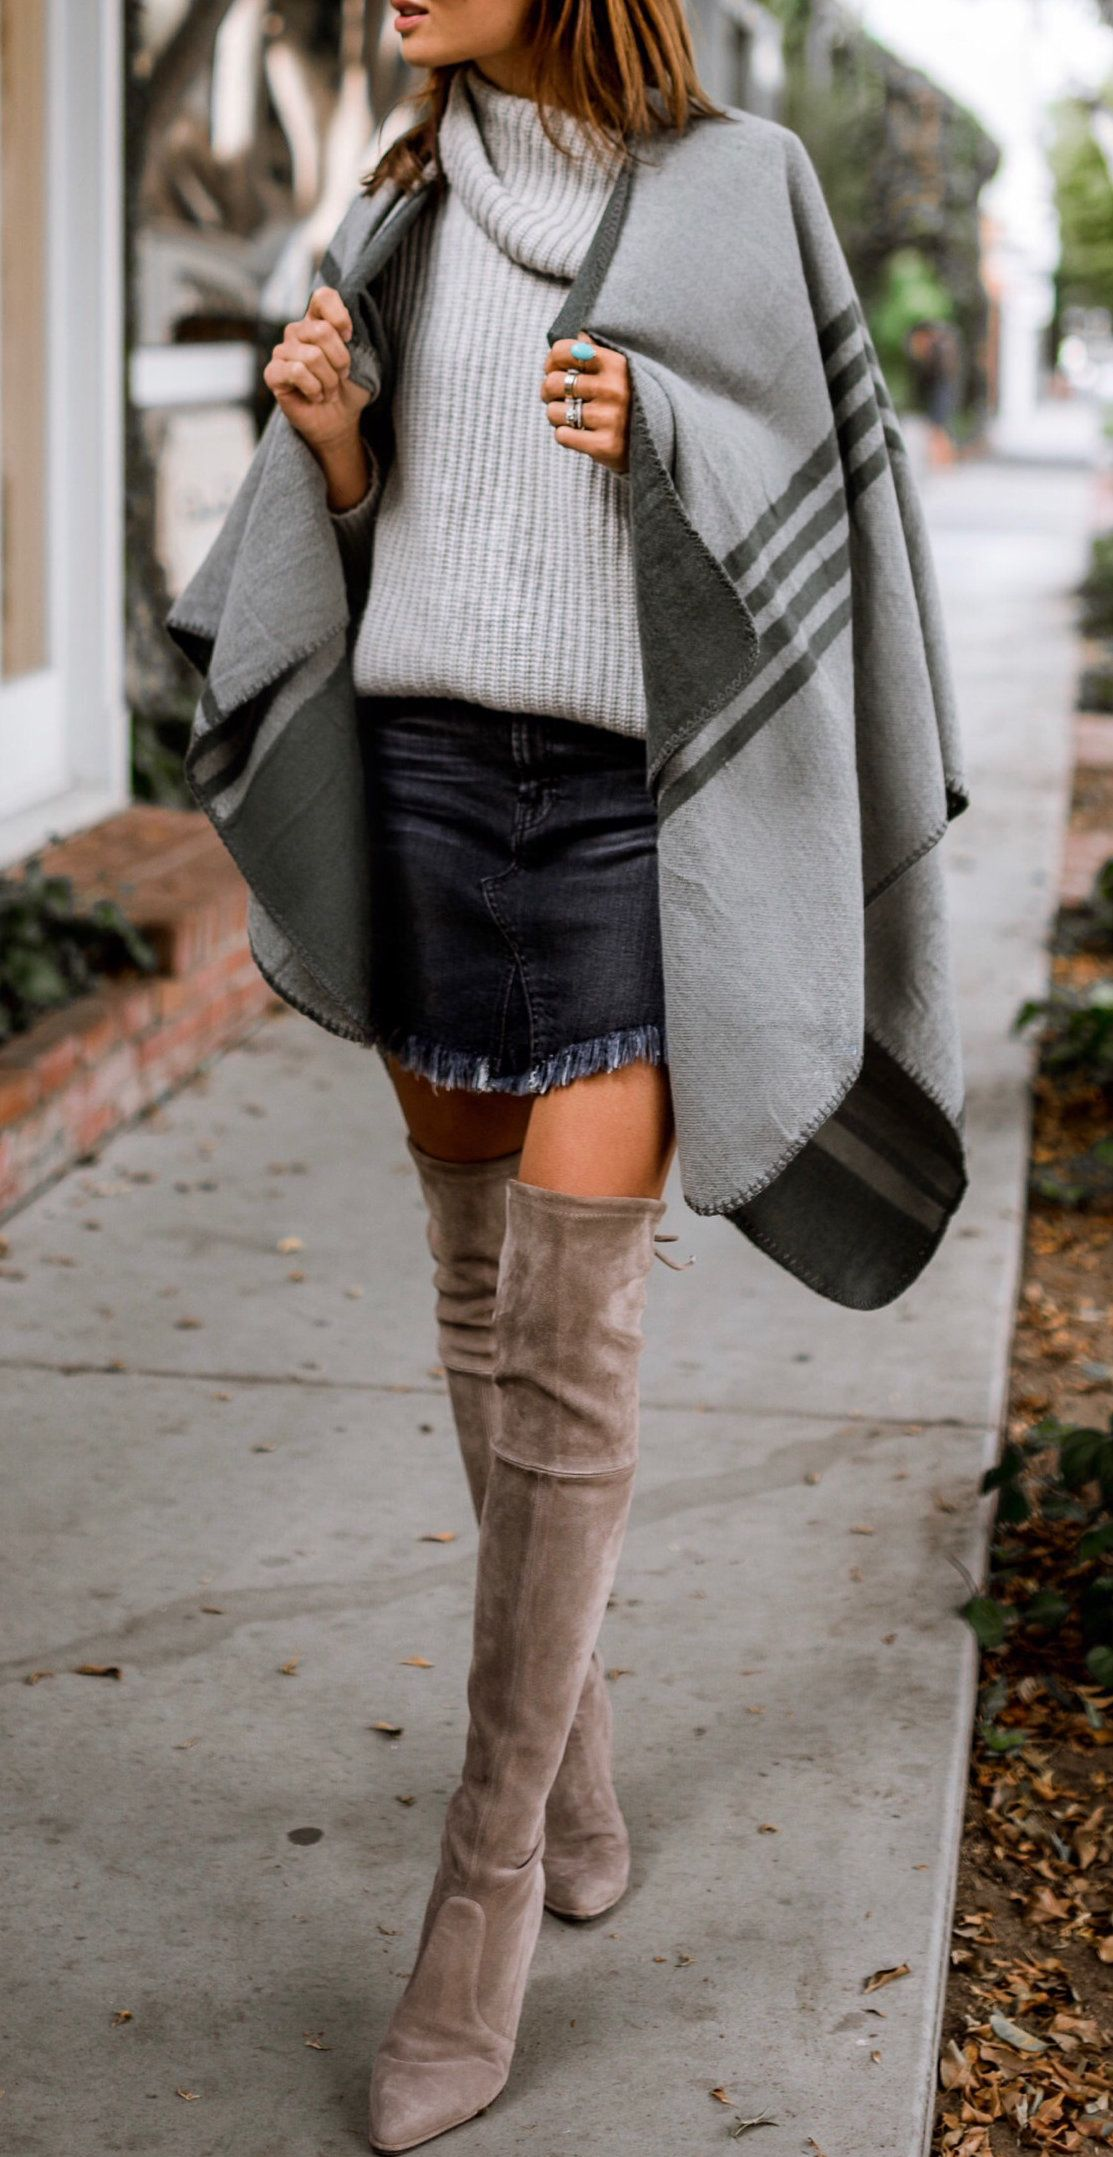 0f6cea9eb7f  winter  outfits women s gray knitted cowl-neck shirt and distressed blue mini  skirt outfit